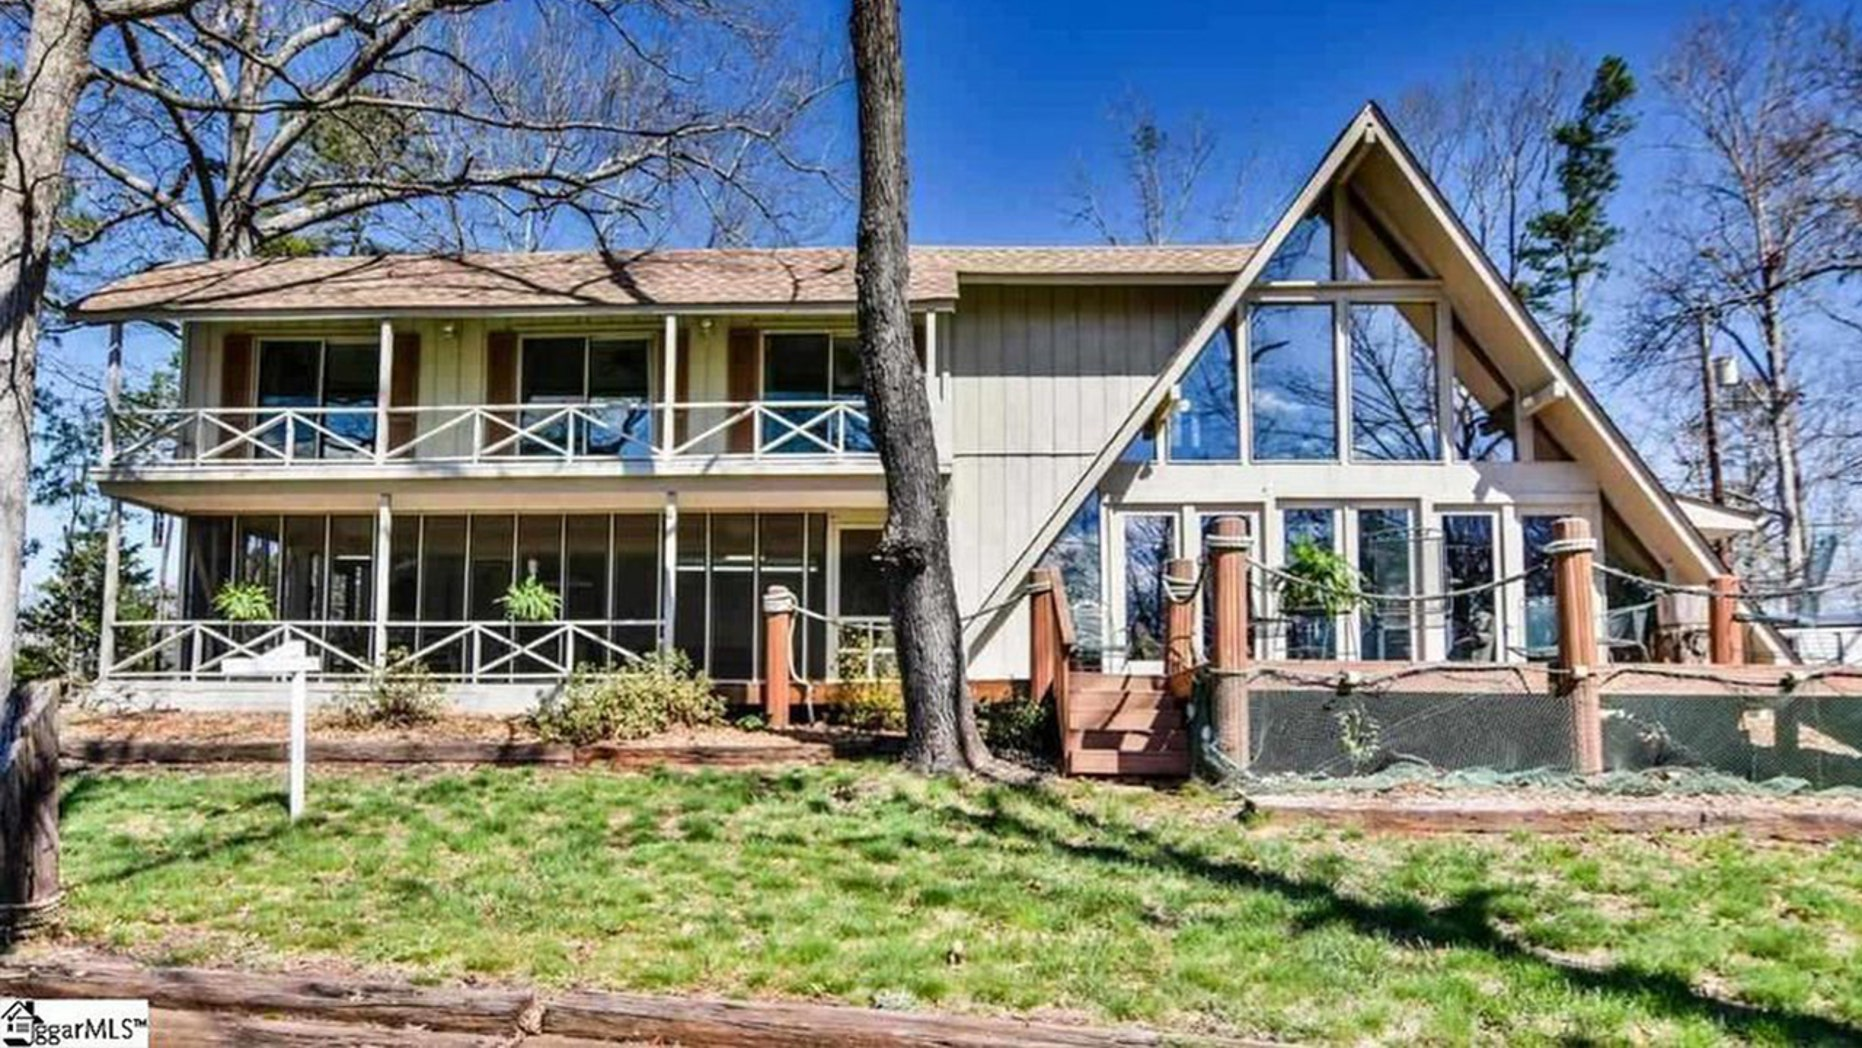 Situated on a 7,405 block feet lot, 420 Fields Avenue in Anderson boasts a 3 bedroom, dual and a half bath home, according to a inventory on Realtor.com.